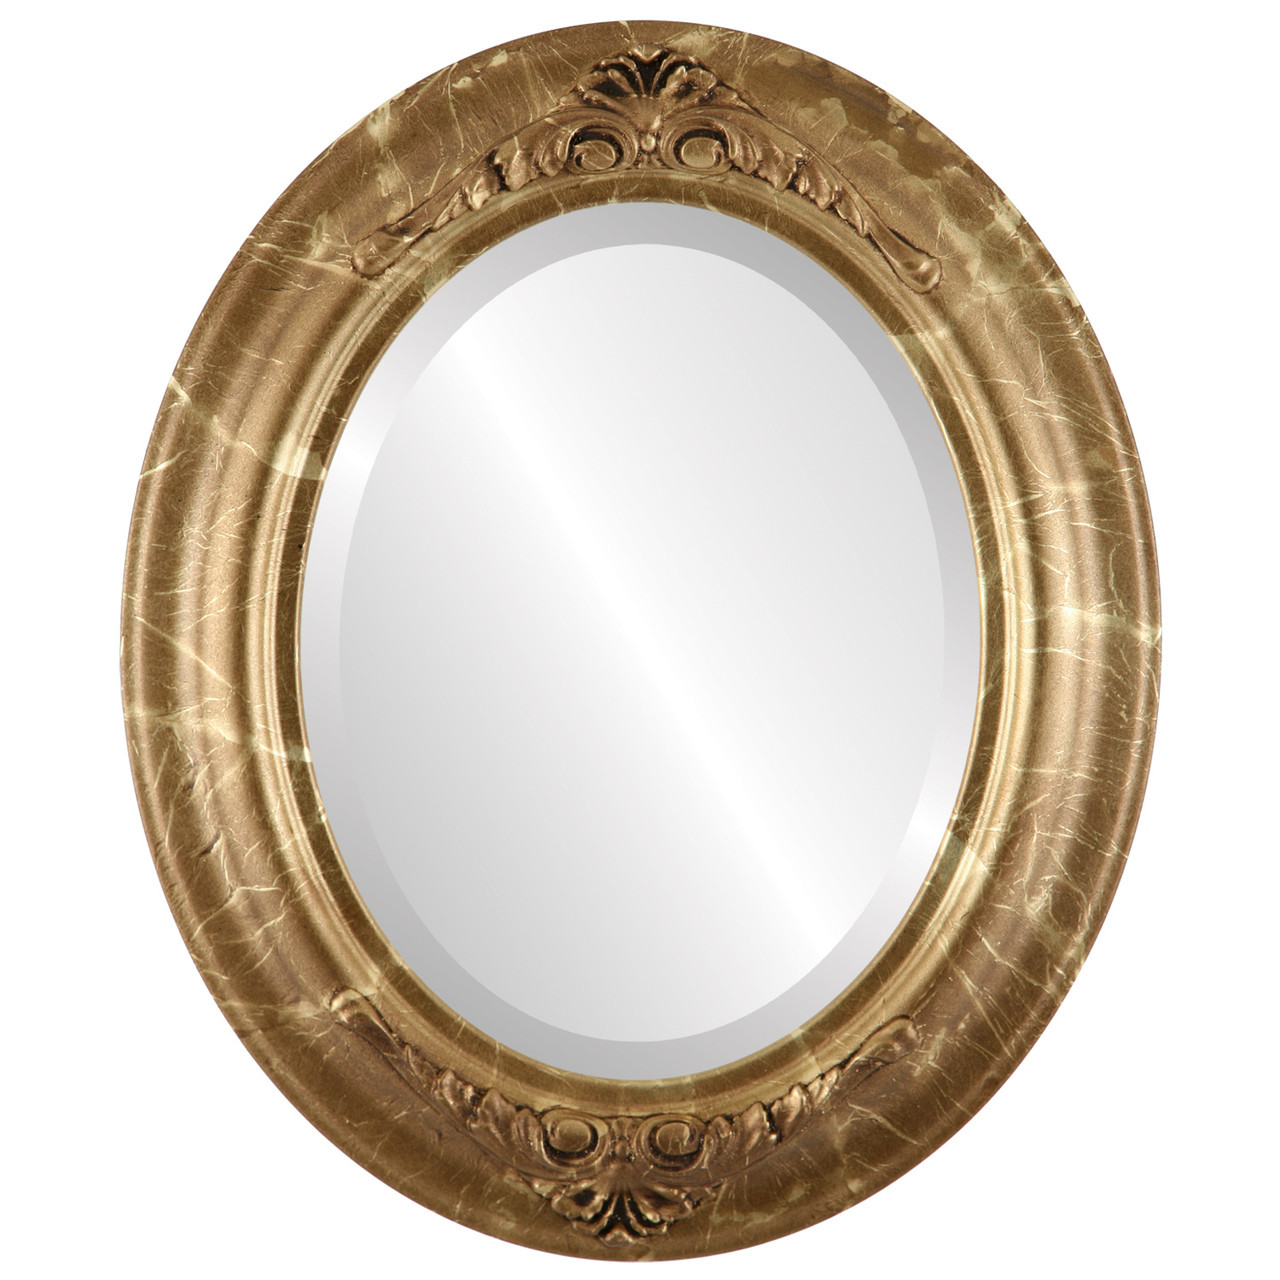 Vintage Gold Oval Mirrors from $164 | Free Shipping